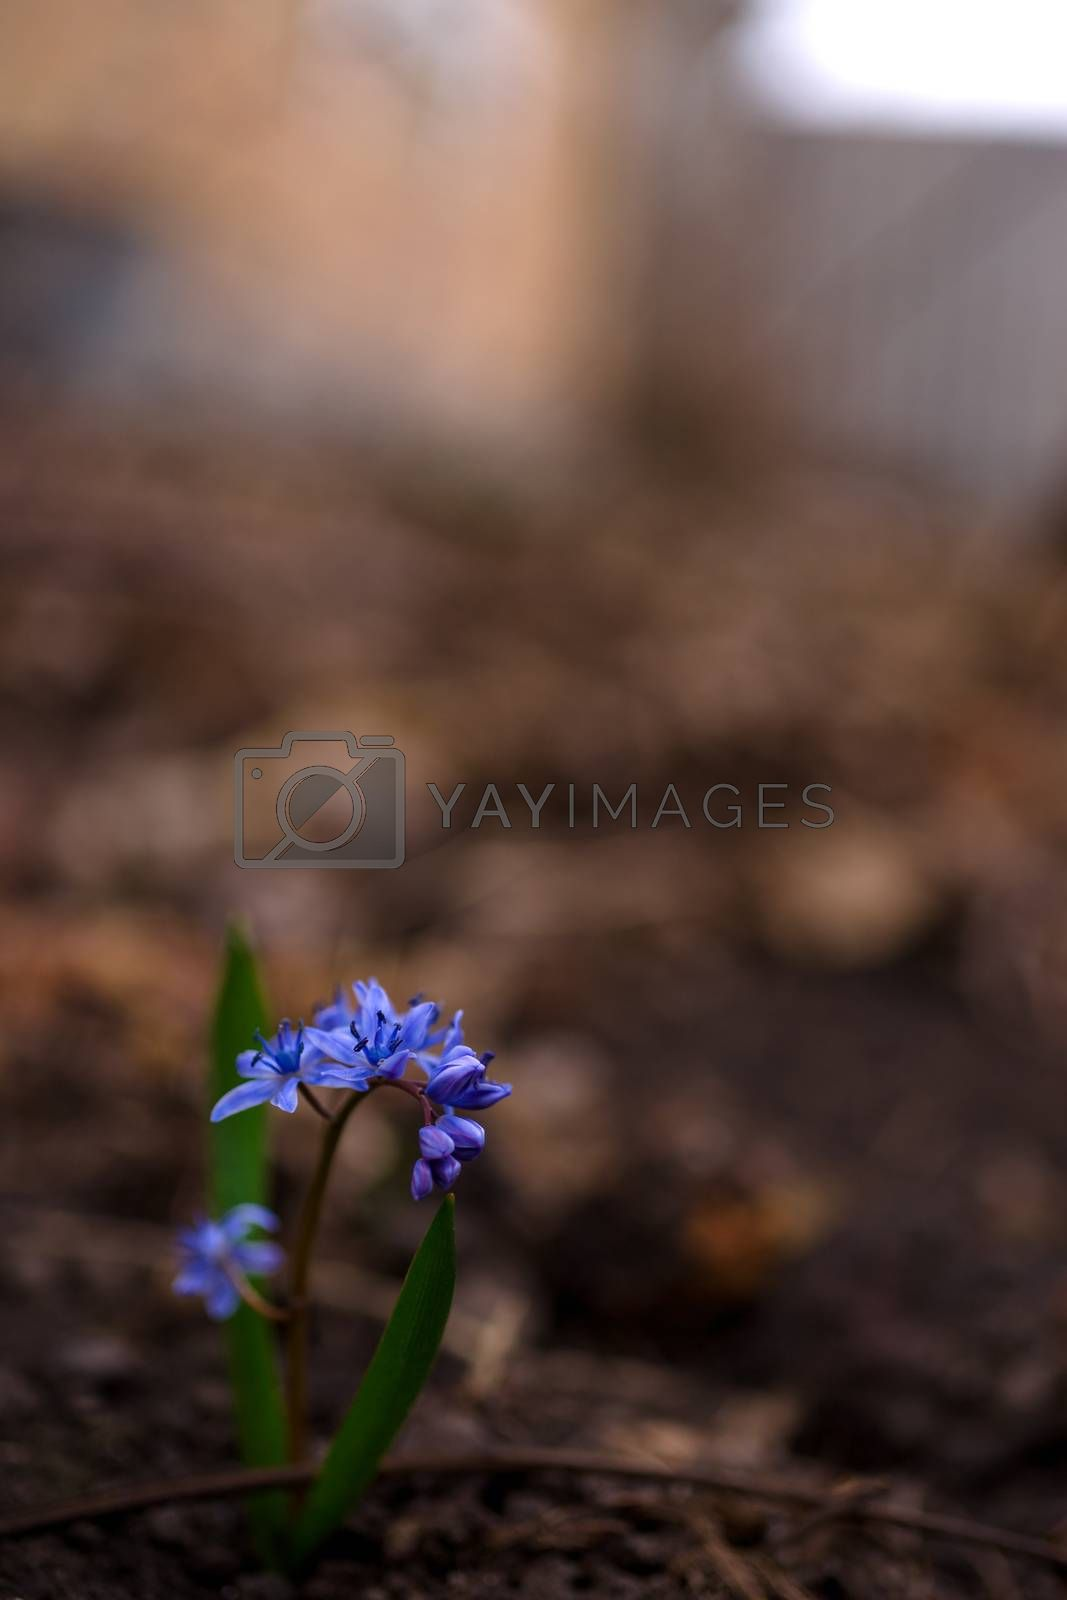 Bluebell flowers in the spring garden close up. Background is br by alexsdriver